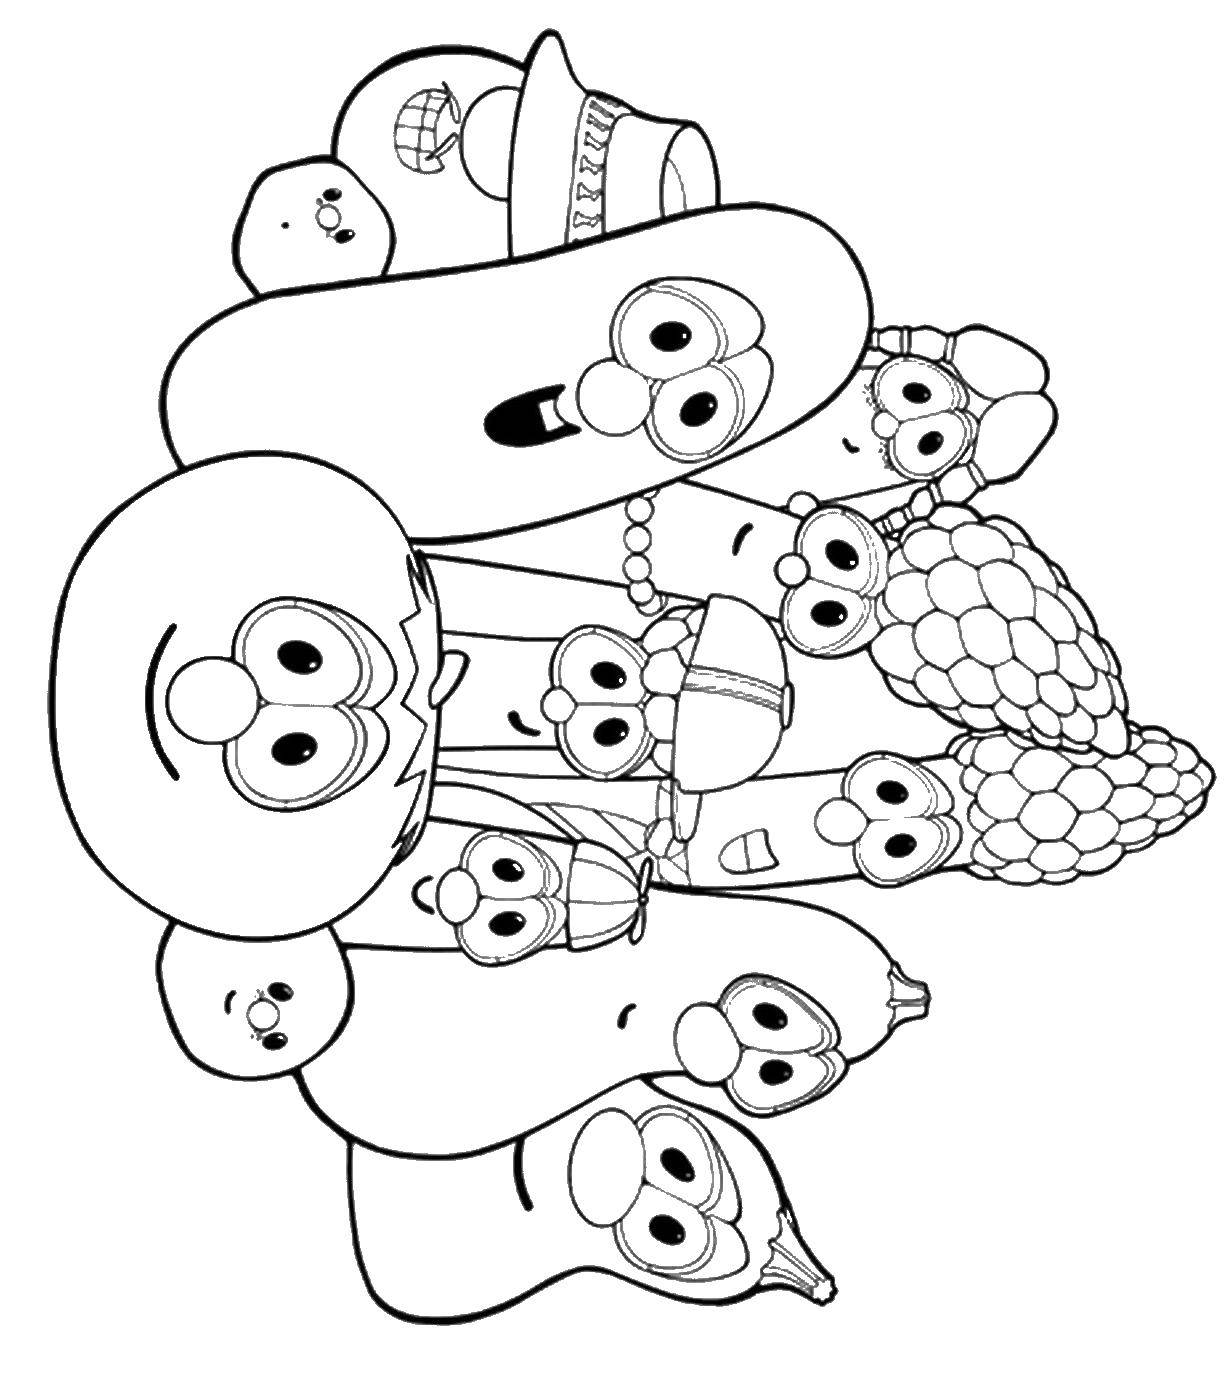 Coloring sheet vegetables Download draw.  Print ,mom ,